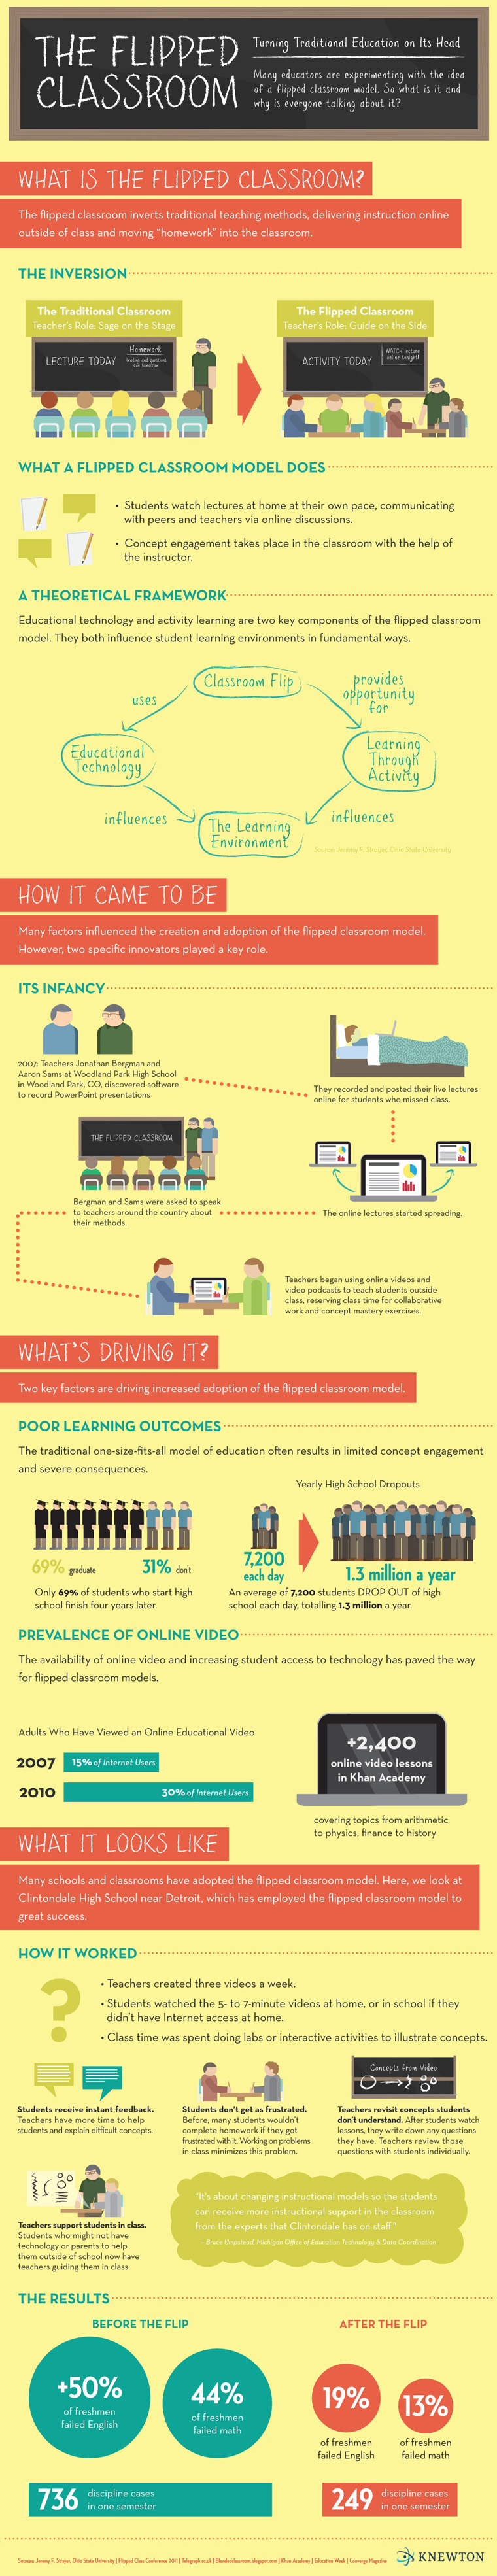 Flipped Classroom in College